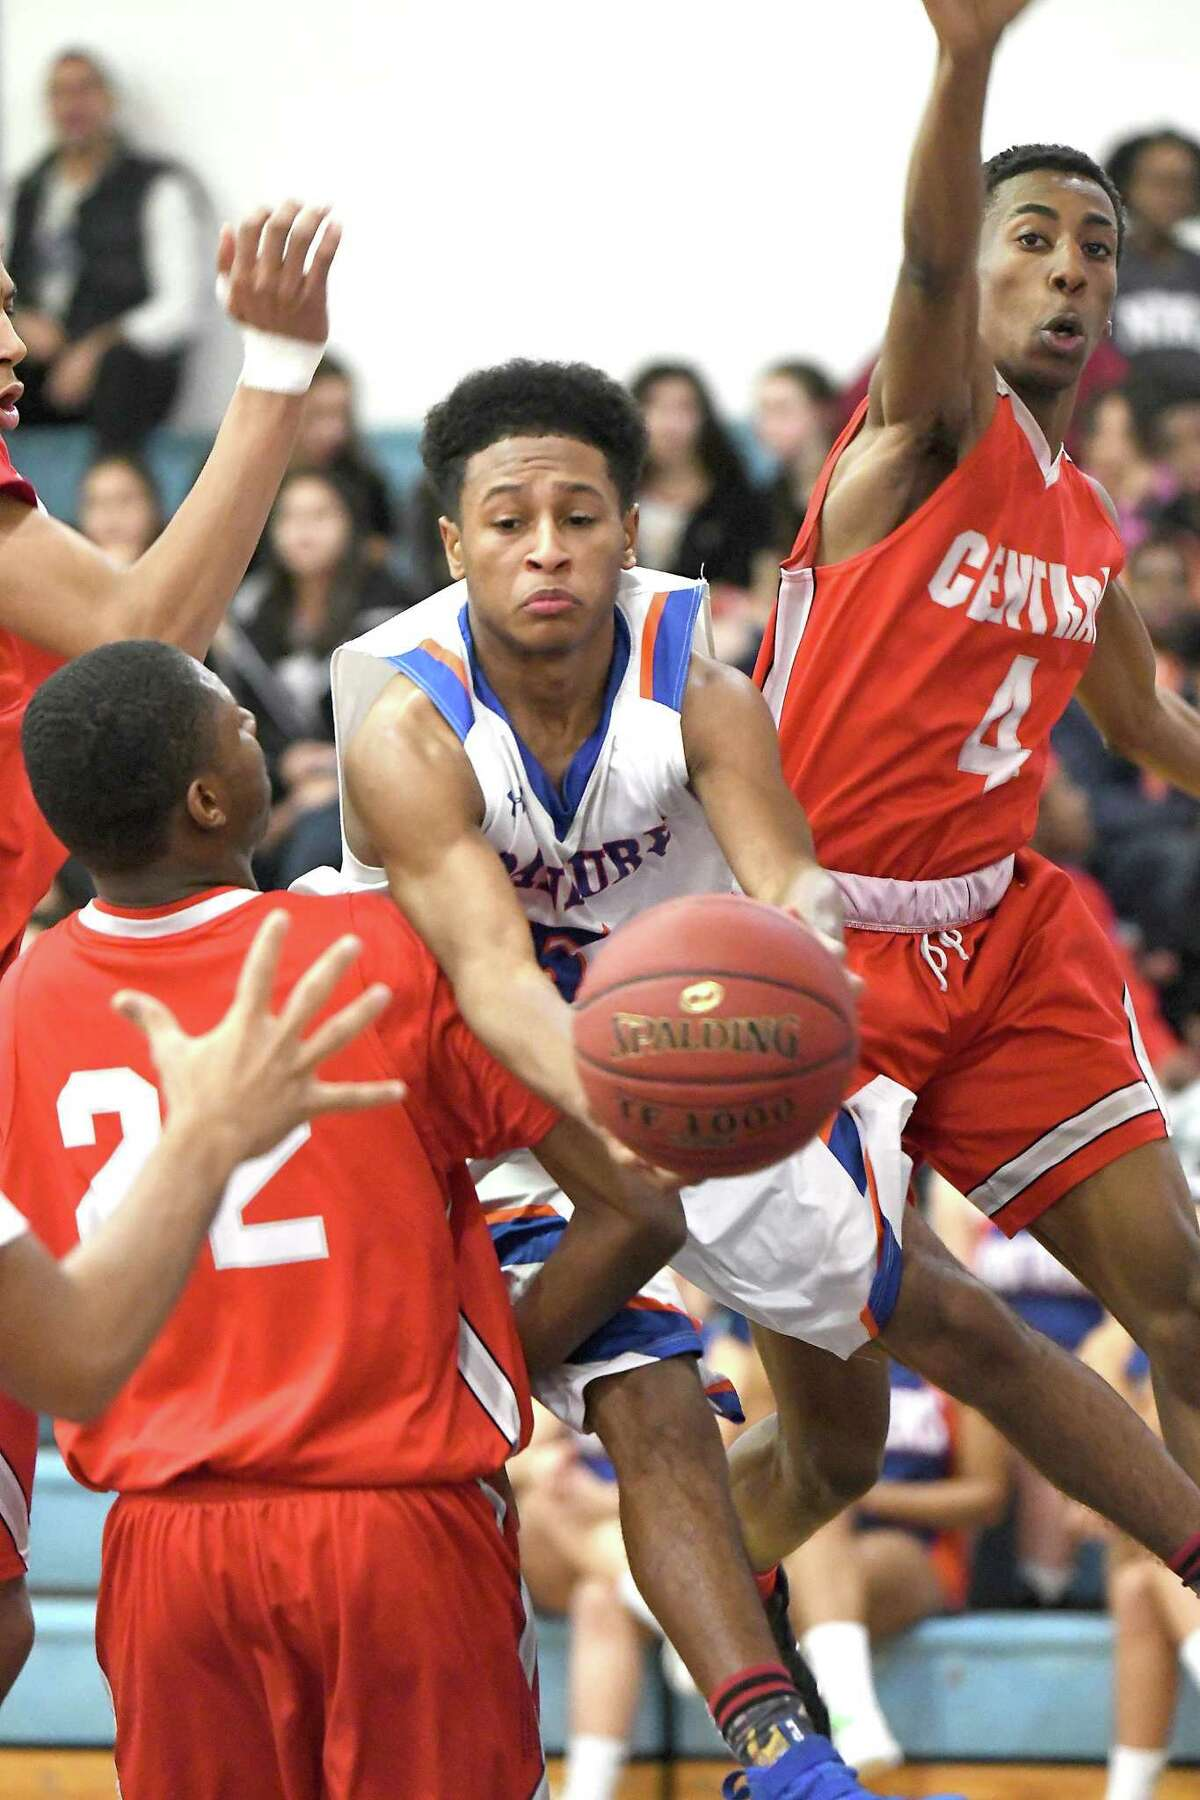 Danbury?'s Javon Hernandez makes a pass between Central?'s Ra?'Quan Rilley, left, and Zack William, during the FCIAC boys basketball game between Danbury and Bridgeport Central in Danbury, Feb. 9, 2018.